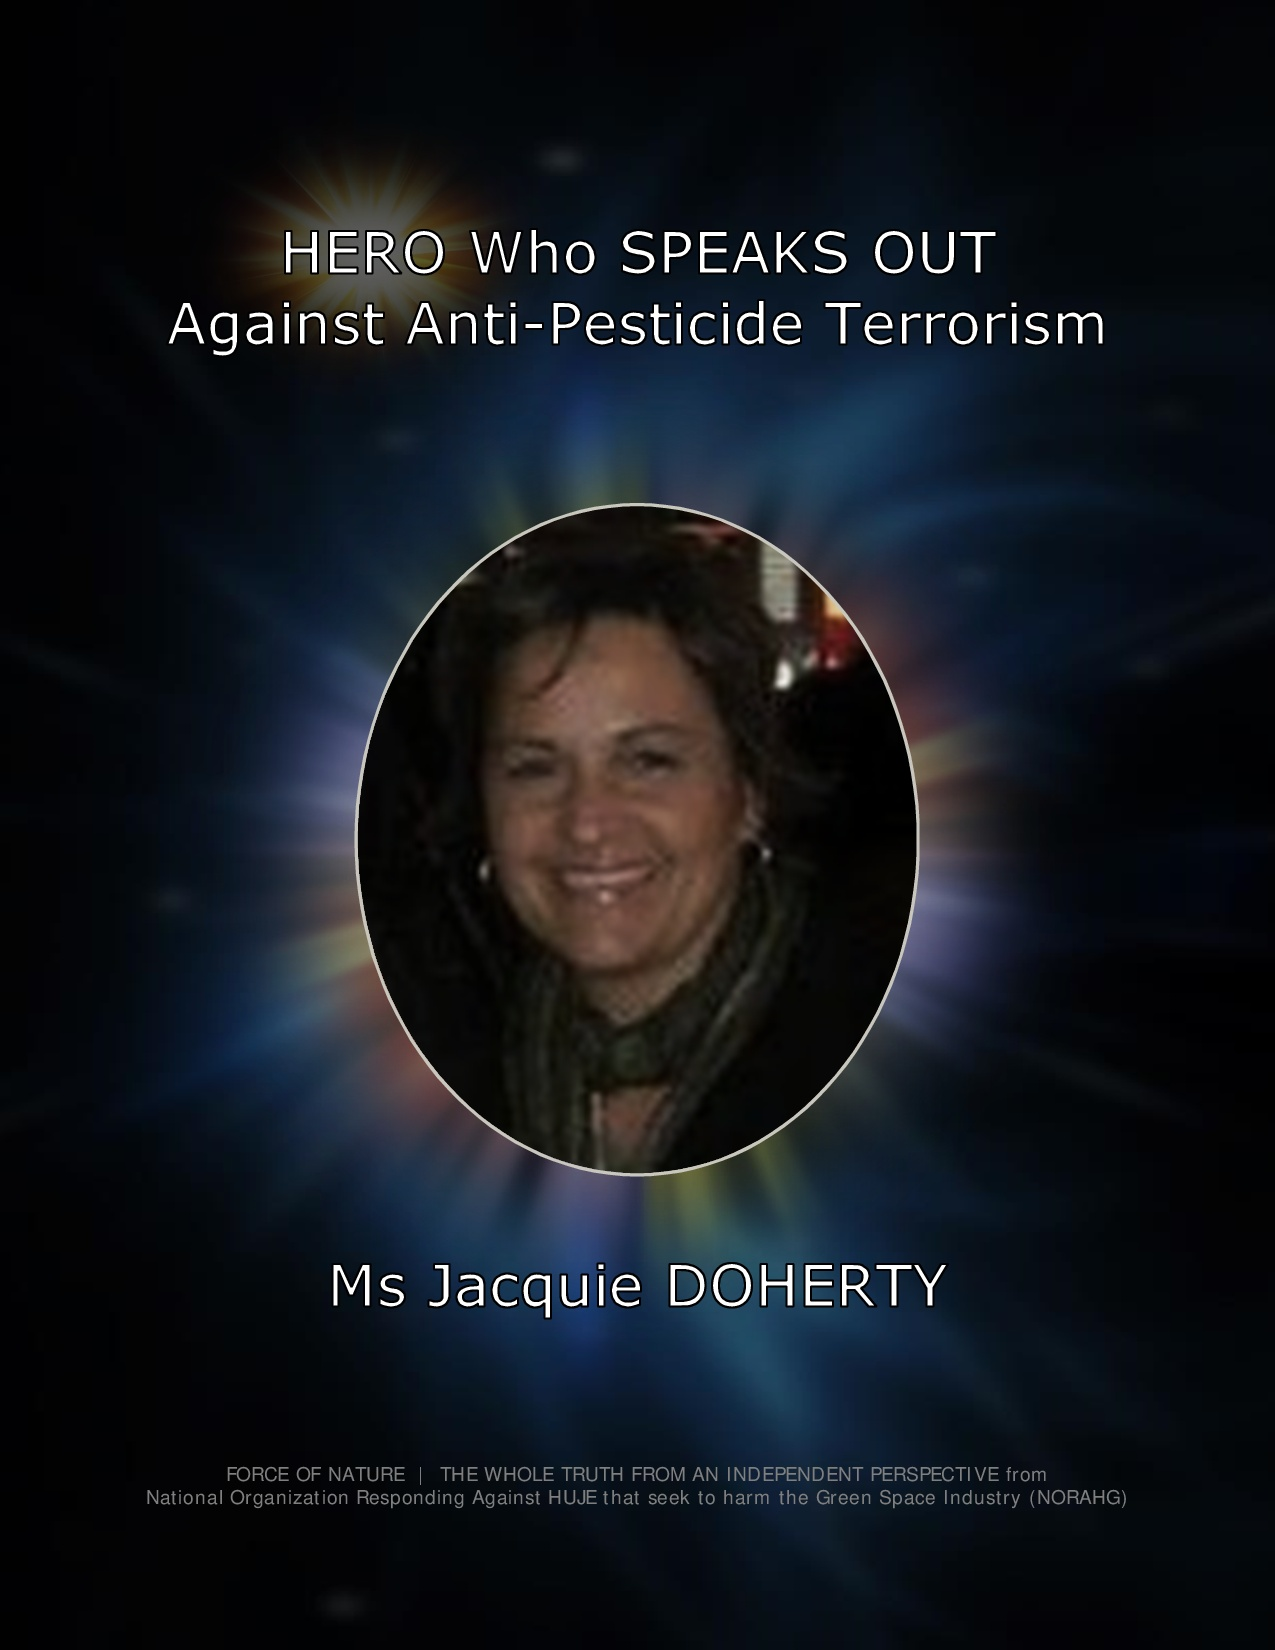 DOHERTY, Ms Jacquie